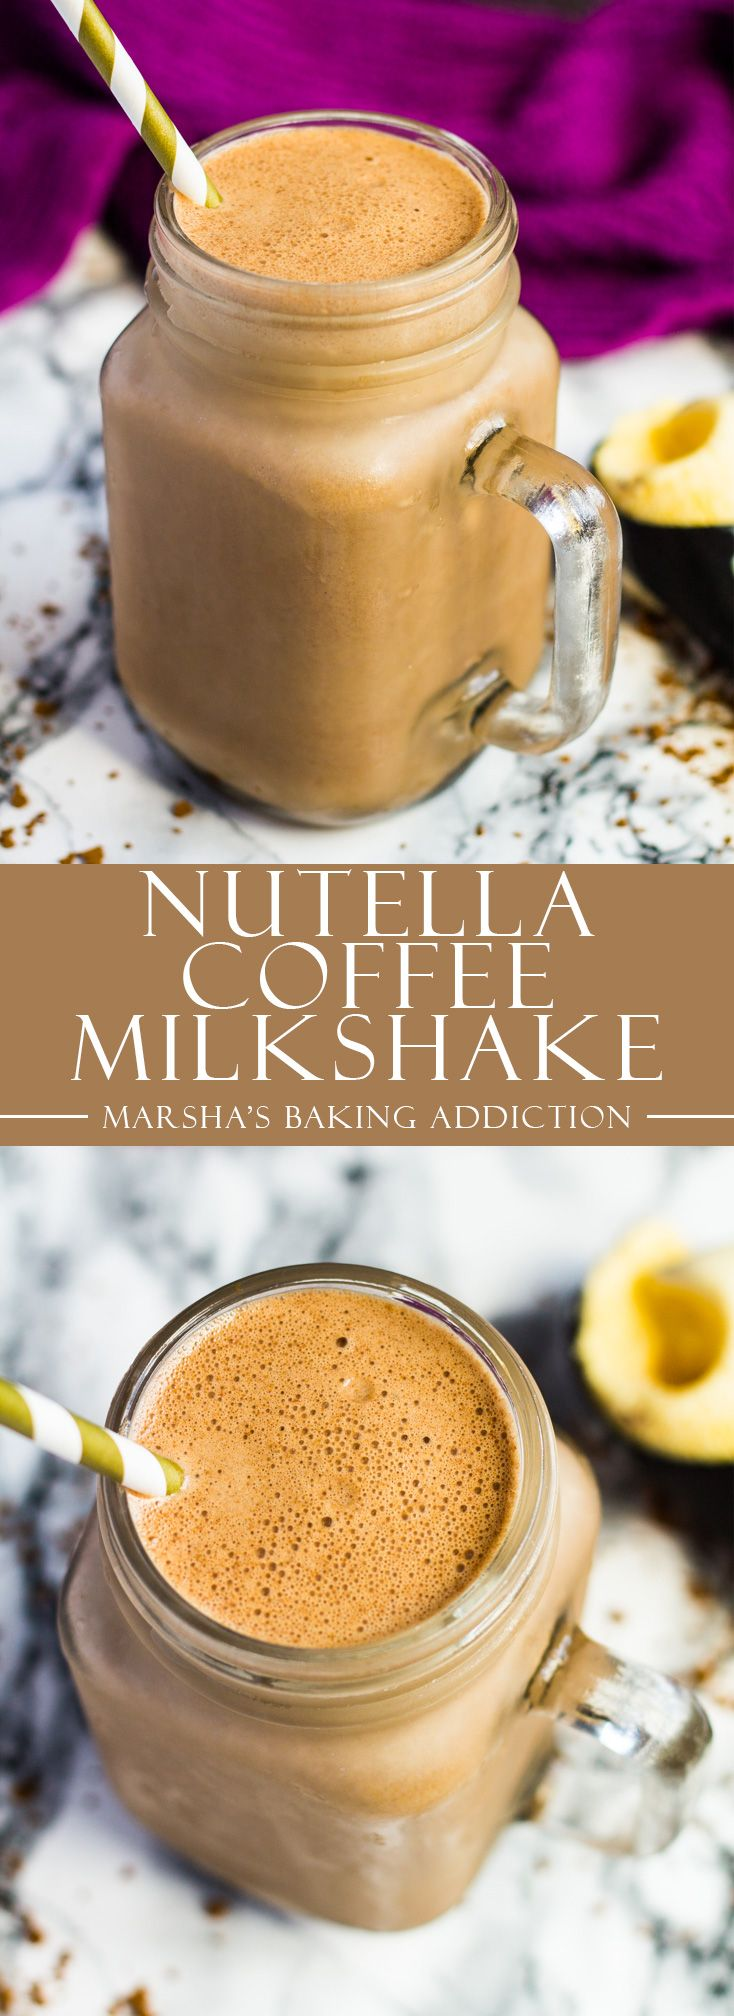 Nutella Coffee Milkshake | marshasbakingaddiction.com @marshasbakeblog